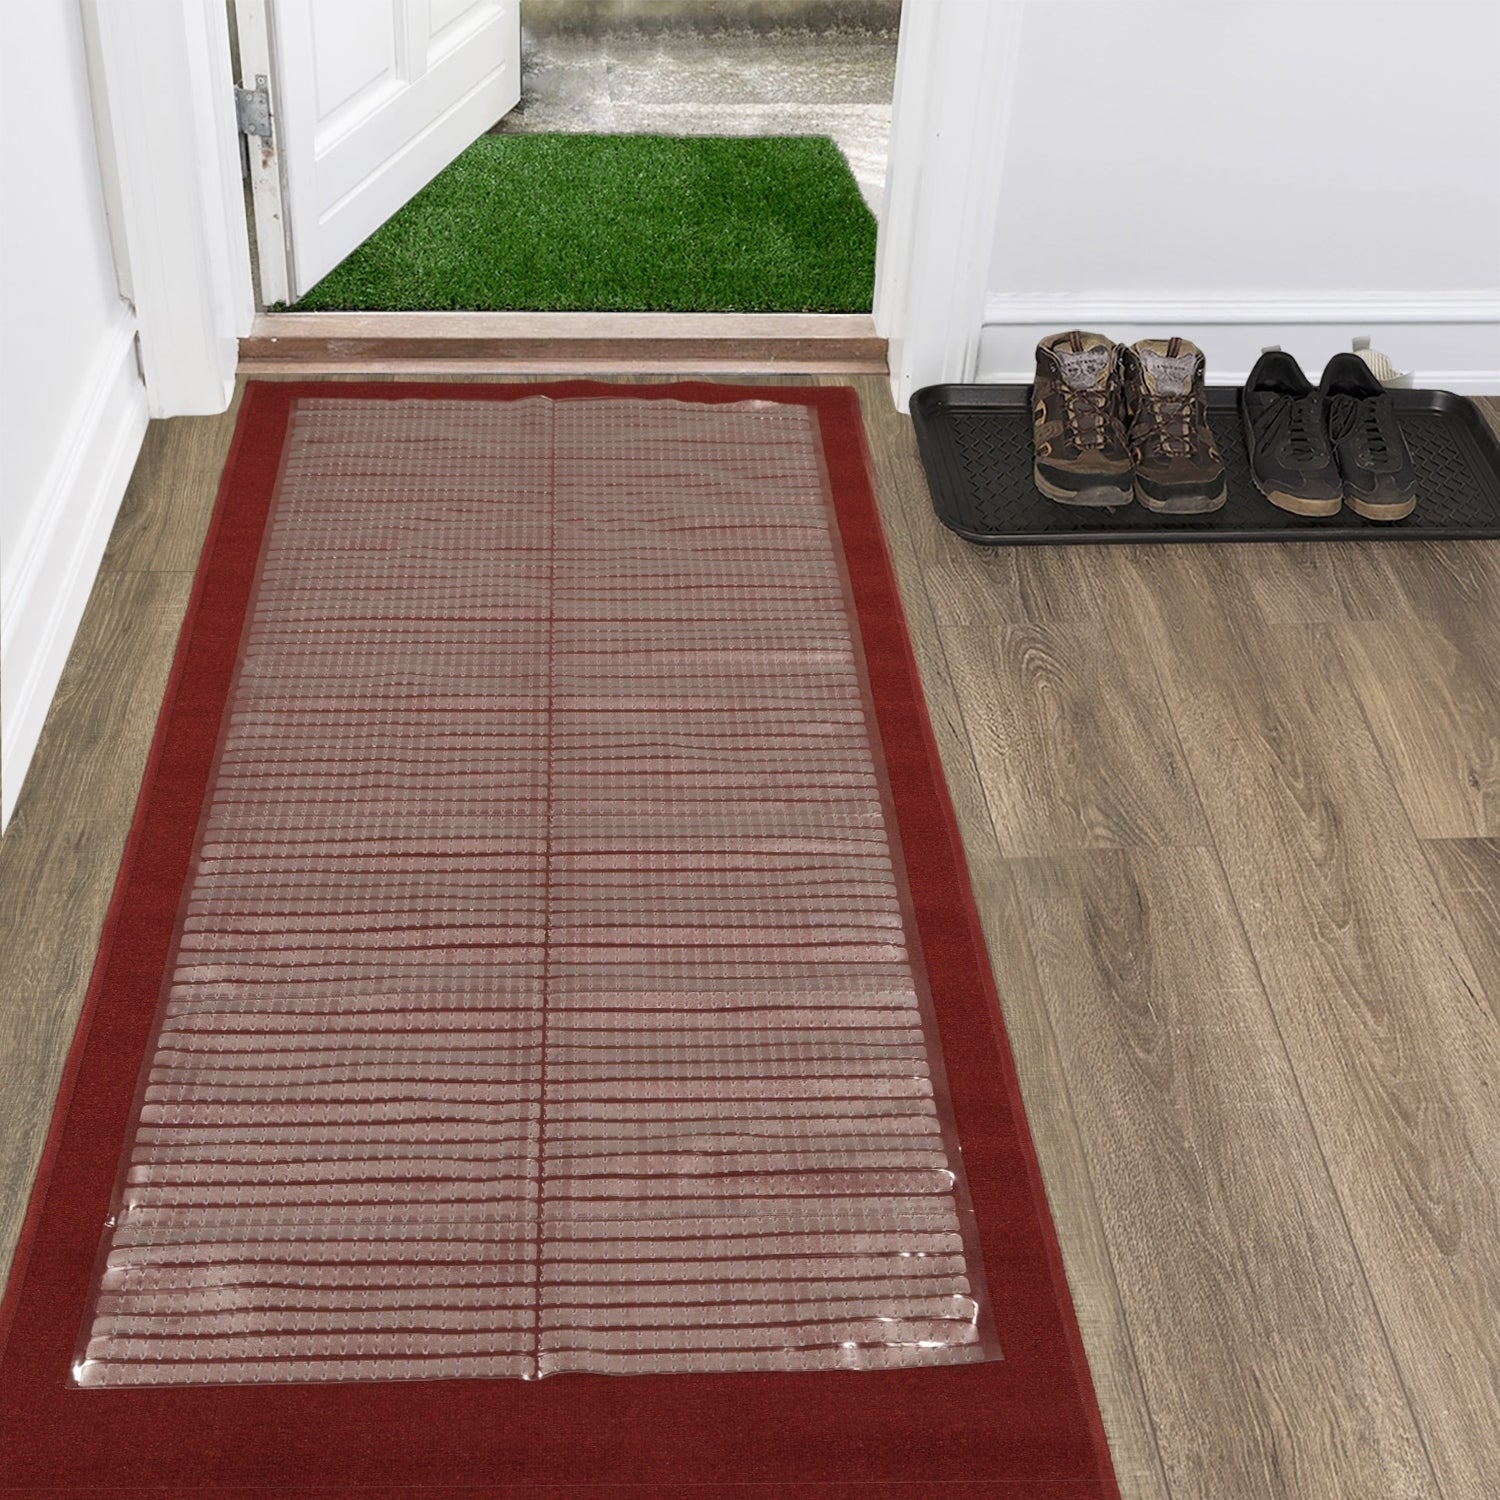 Berrnour Home Multi-Grip Plastic Clear Runner Carpet Prot...